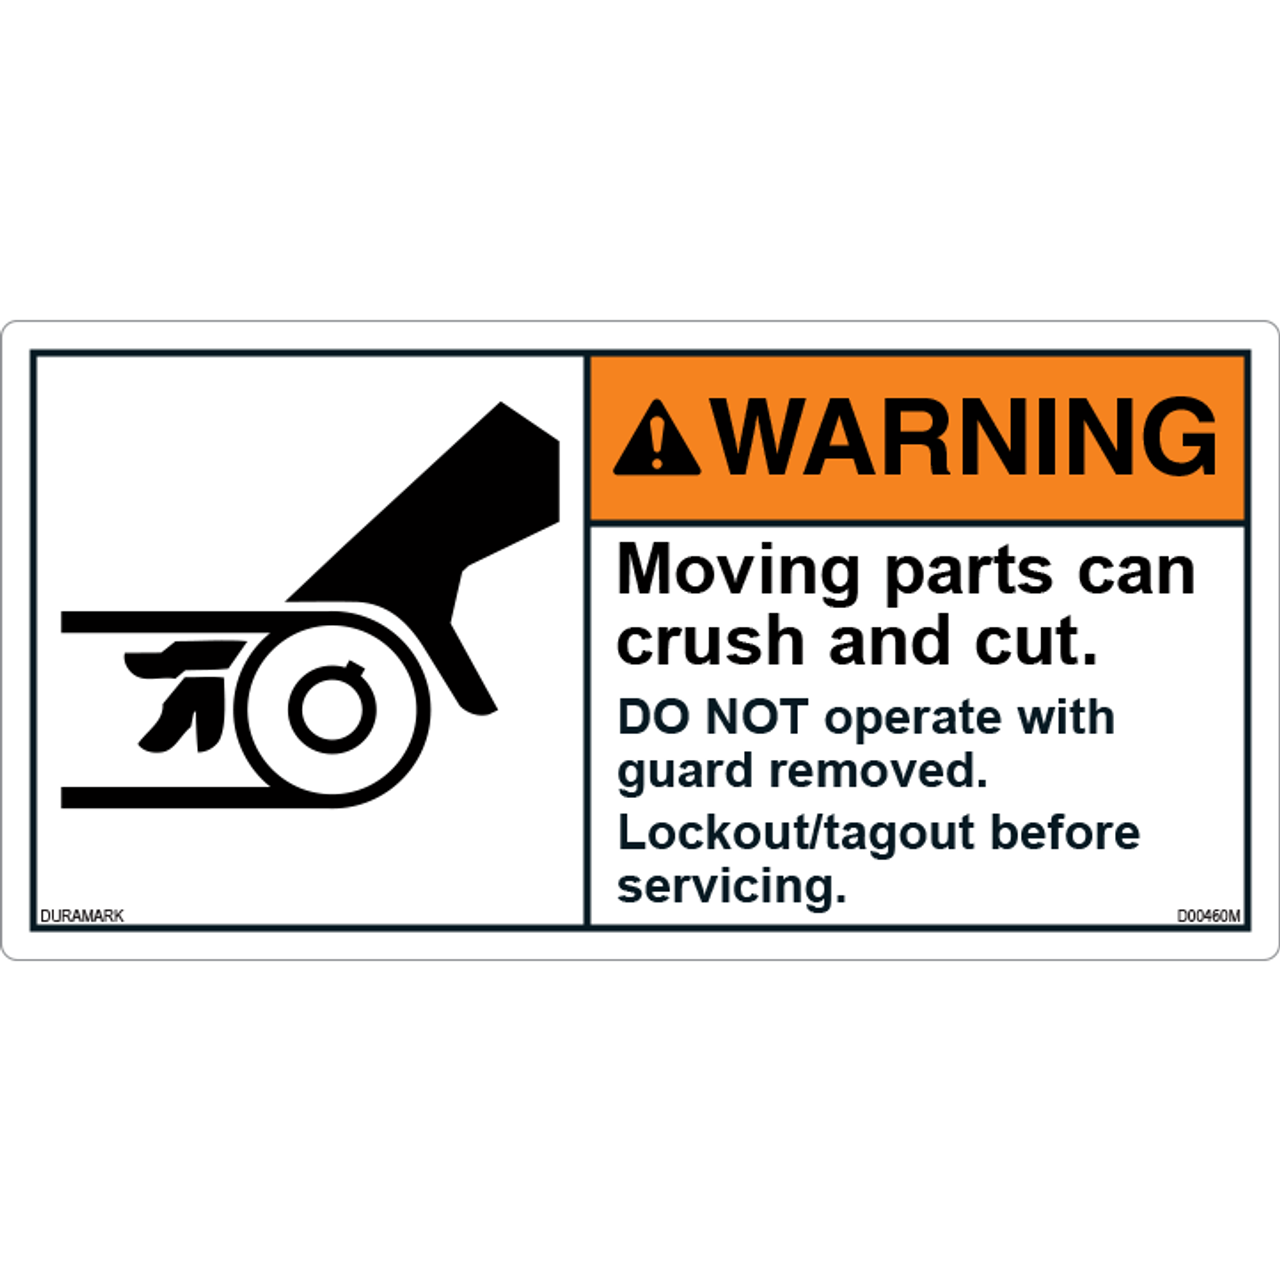 ANSI Safety Label - Warning - Roller - Crush And Cut - Lockout/Tagout